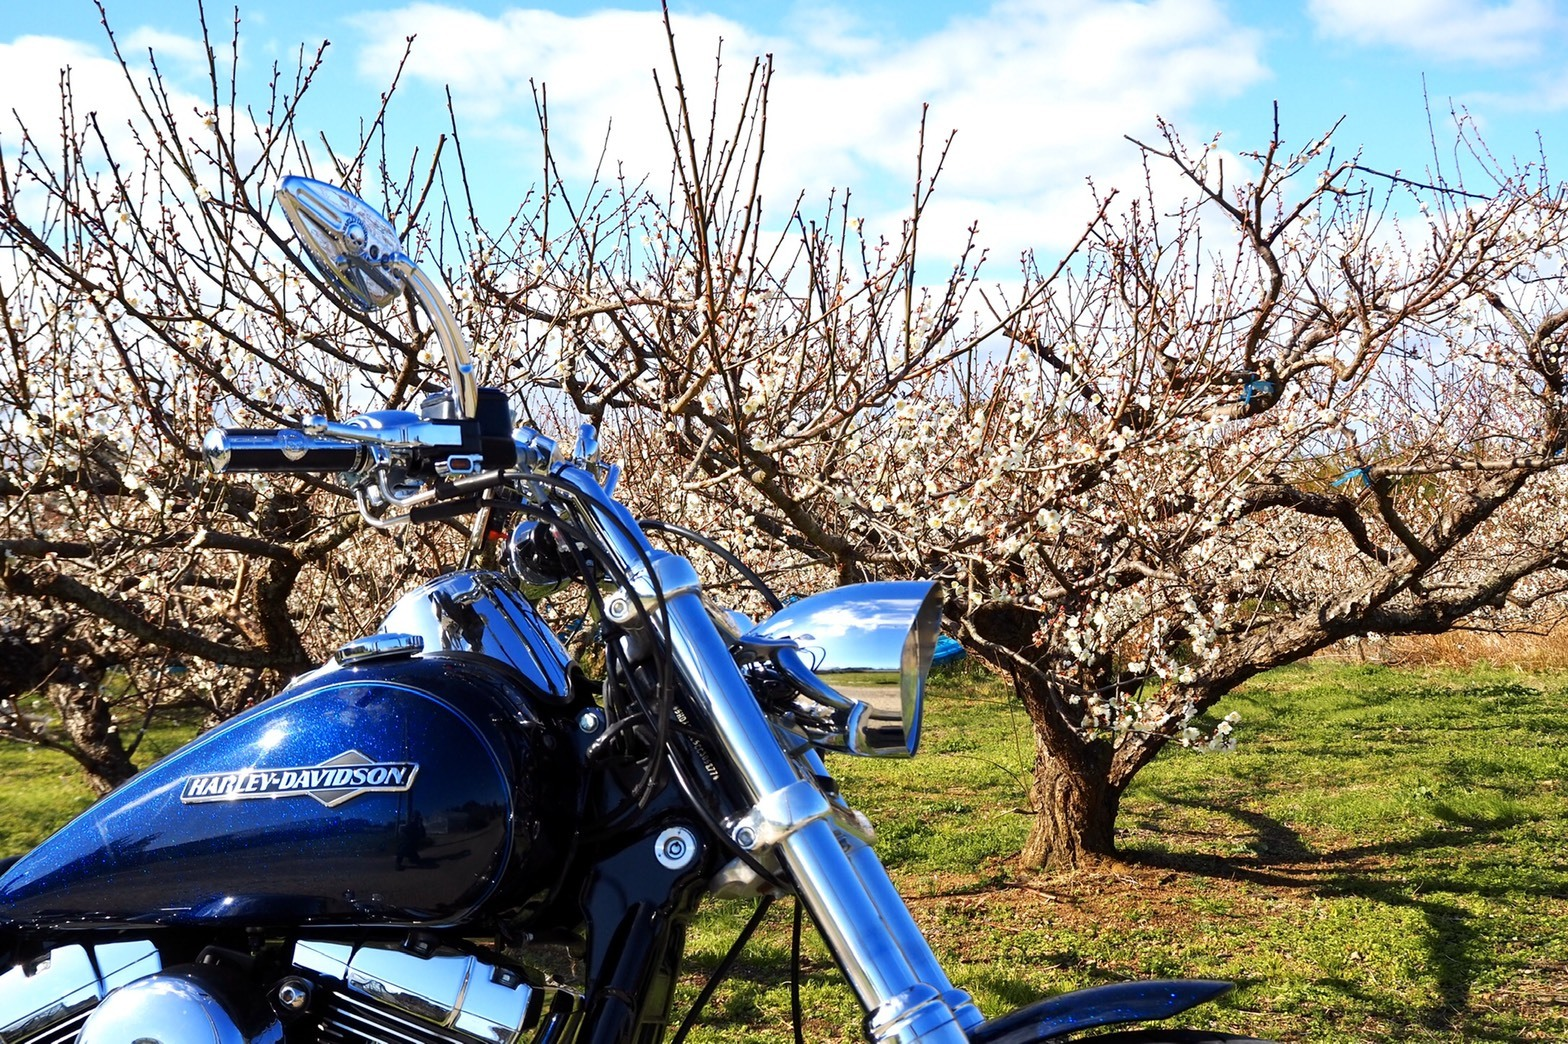 harleydavidson-motorcycle-touring-blog-wakayama-plum-tree-2.jpg